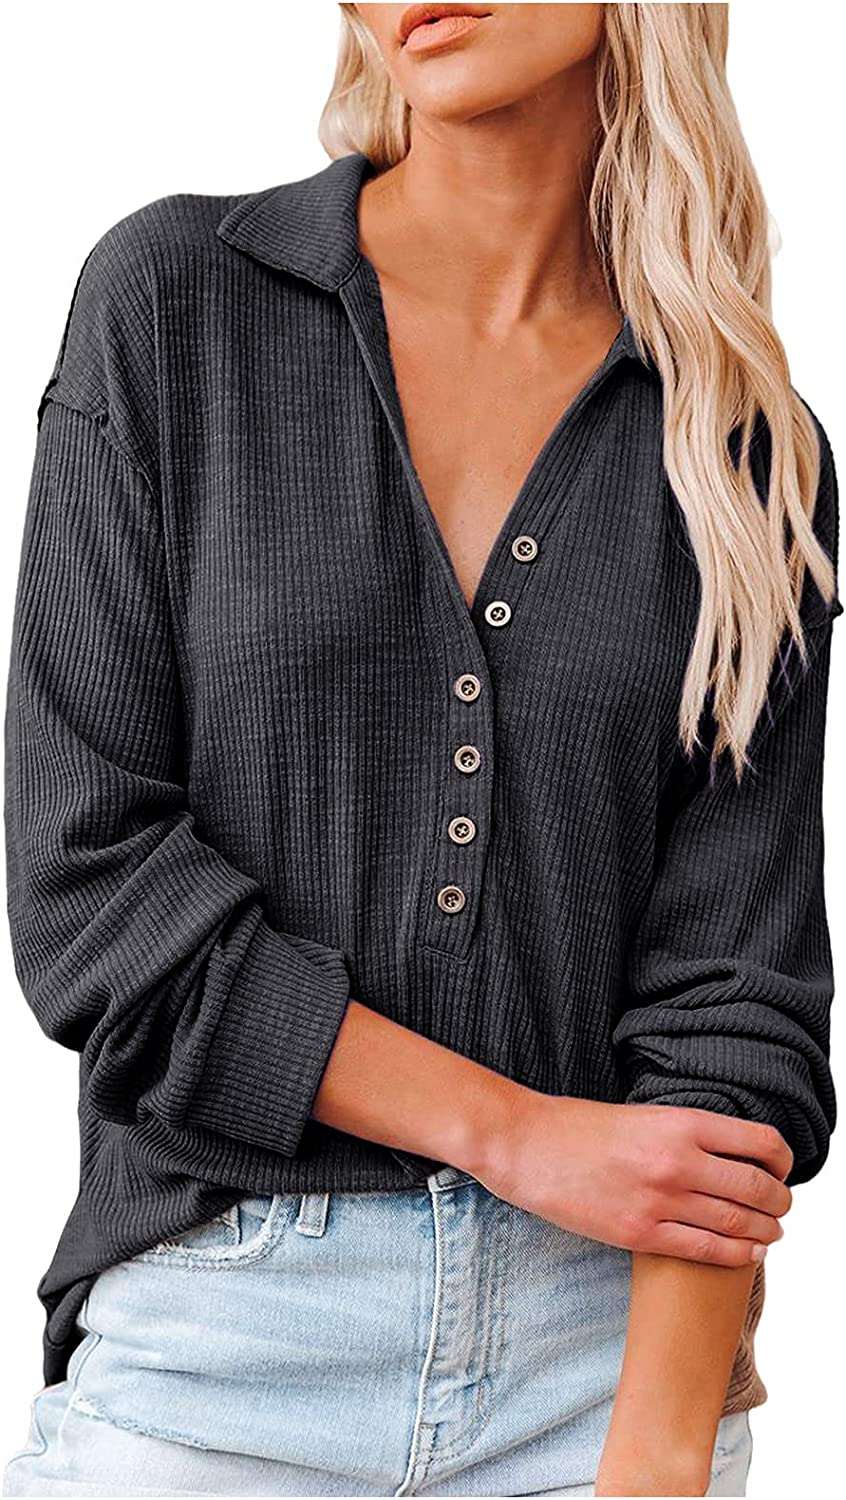 Women Casual Button Up V Neck Blouses Long Sleeves Solid Color Stand Collar Knitted Tops Cute Relaxed Fit Shirts